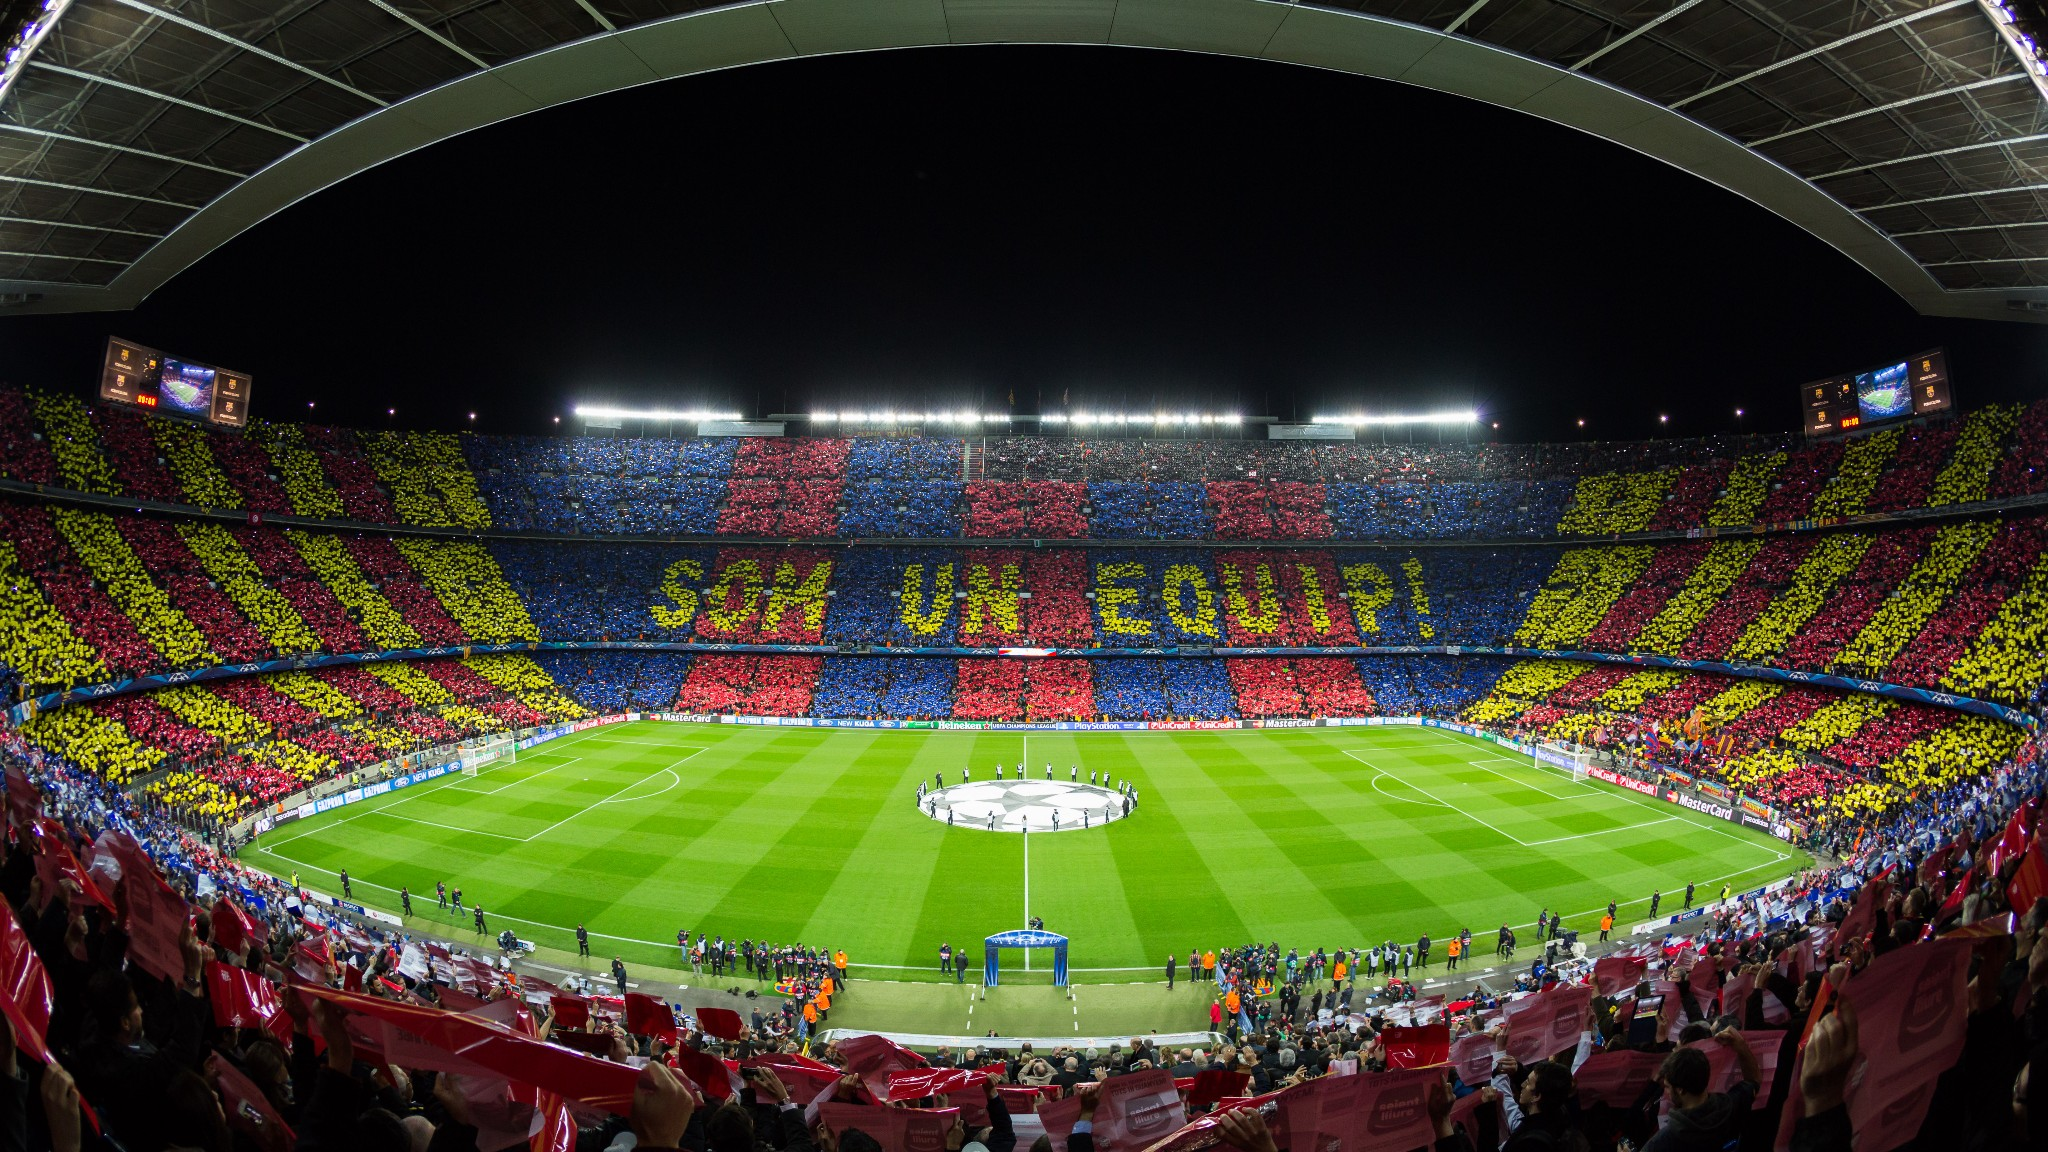 Barcelona Fc: 9 Best Venues To Watch Live Sports In Barcelona